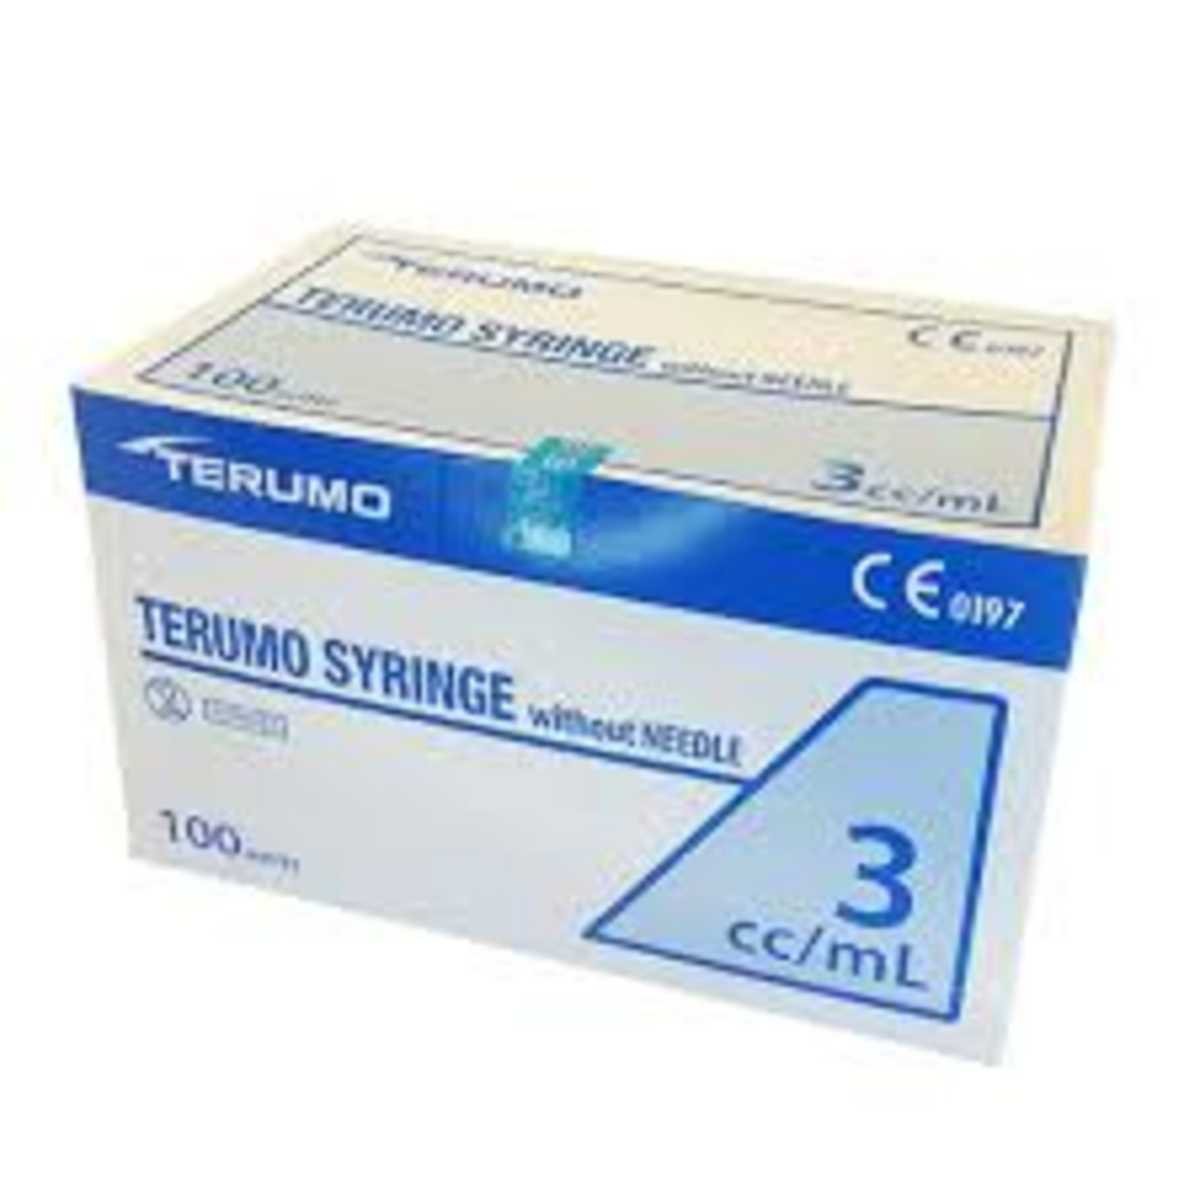 3ml Terumo Syringe Without Needle